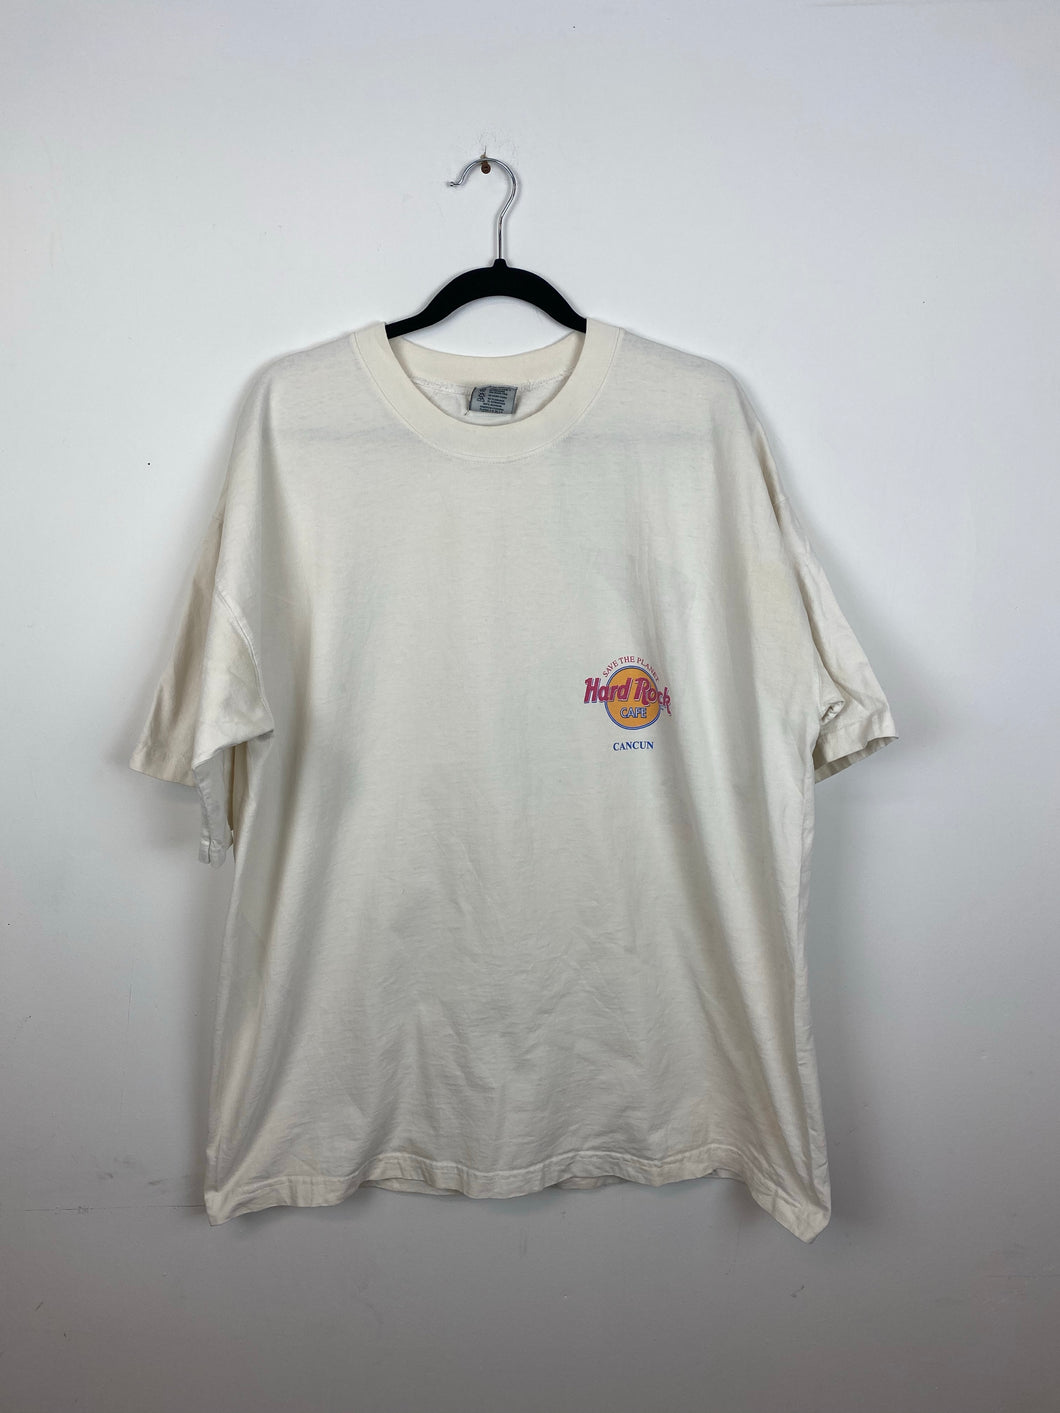 Front and back HardRock Cancun t shirt